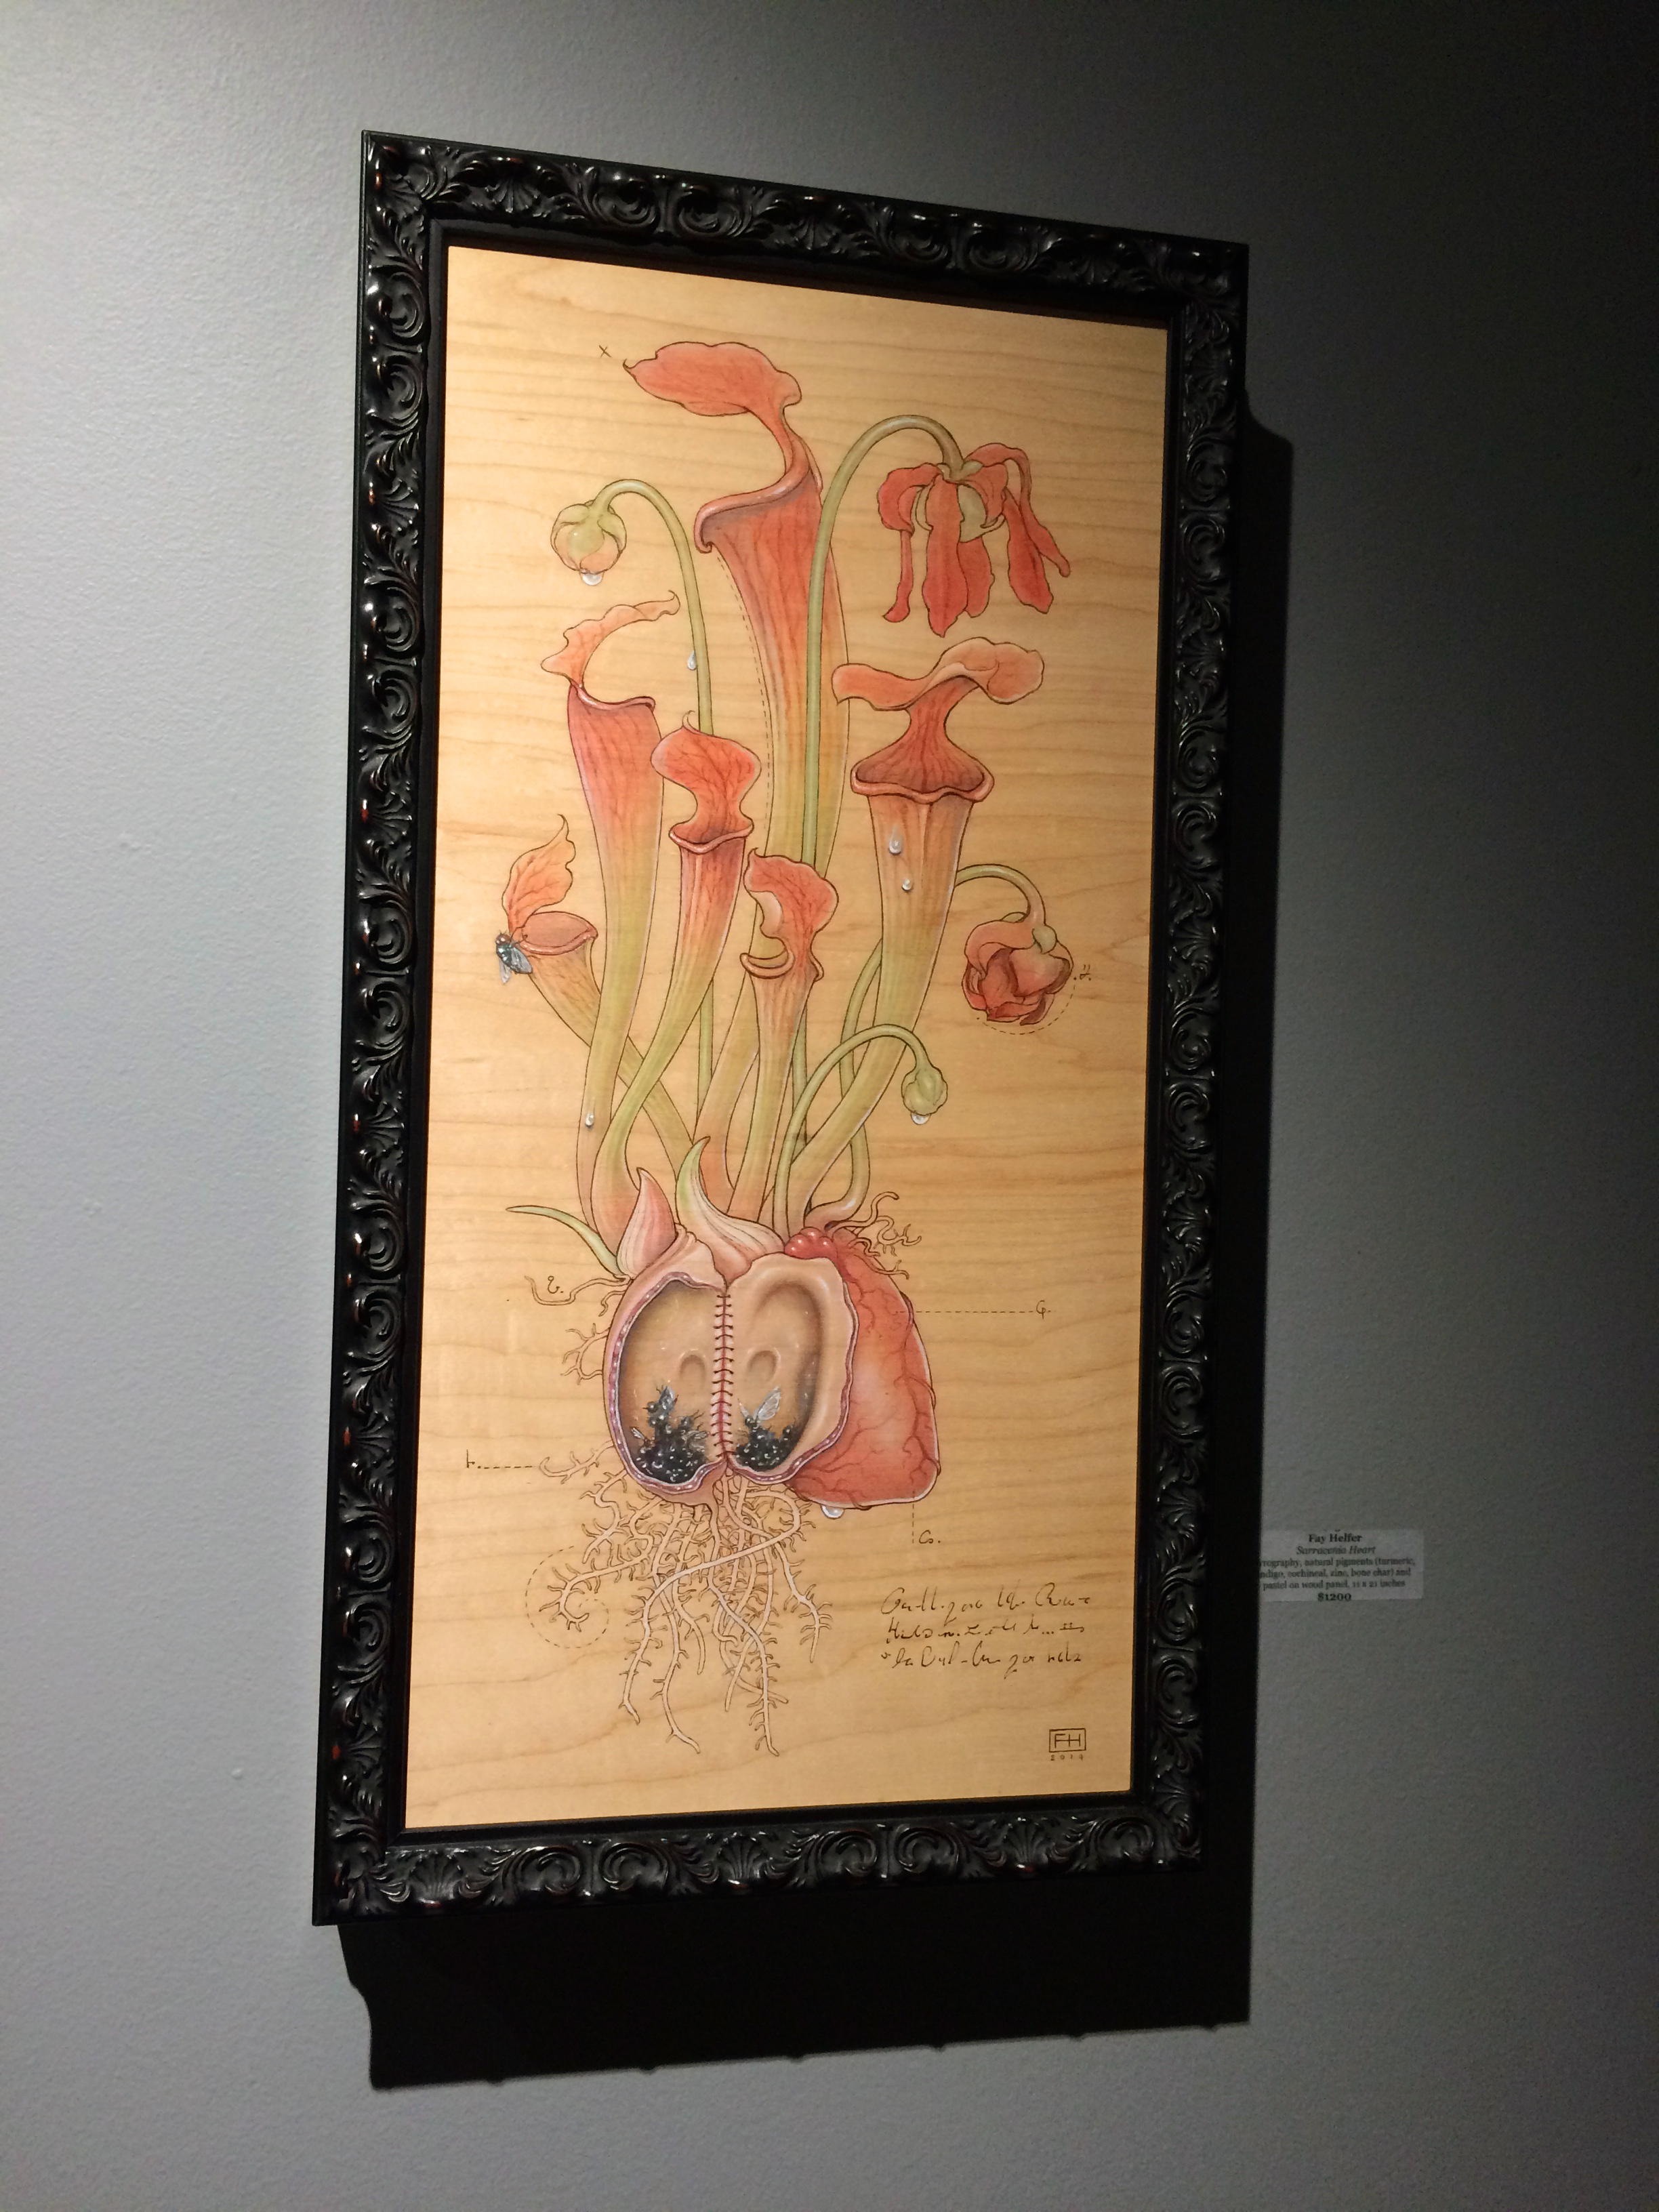 'Sarracenia Heart' by Fay Helfer. I love that this one was created using pyrography and natural pigments, including indigo, turmeric, bone char, and cochineal.